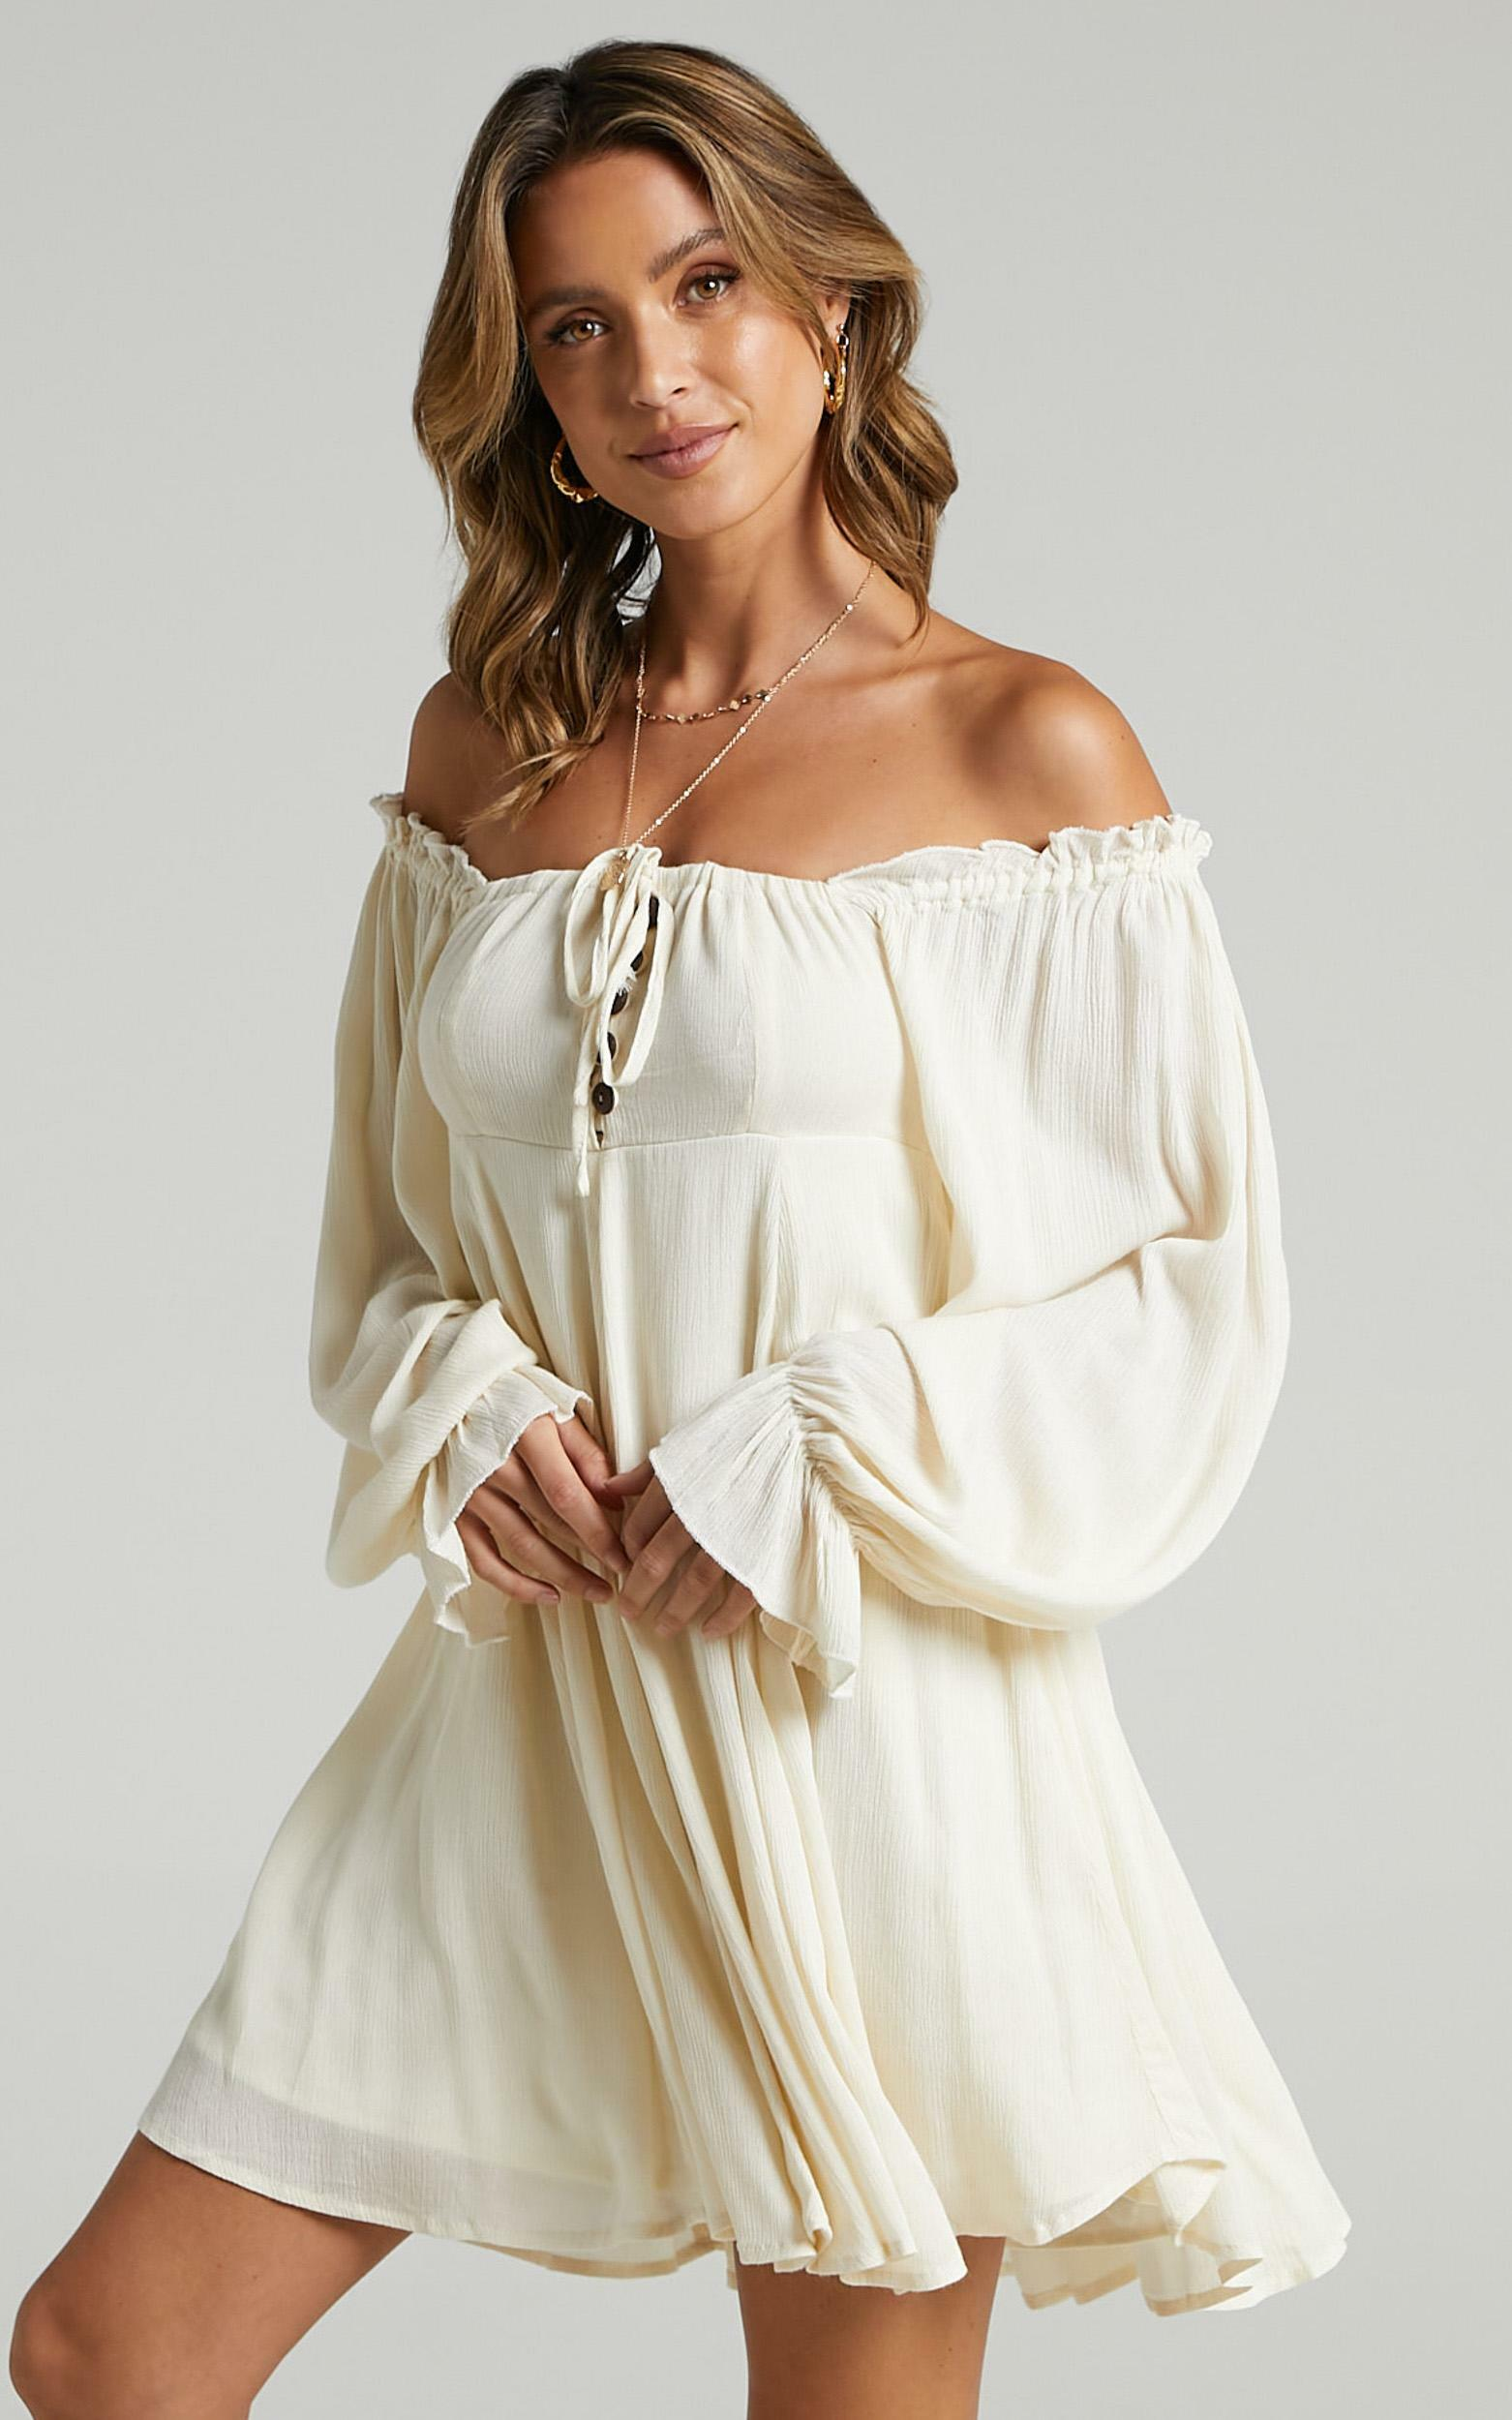 Gypsy Soul Dress in cream - 6 (XS), Cream, hi-res image number null